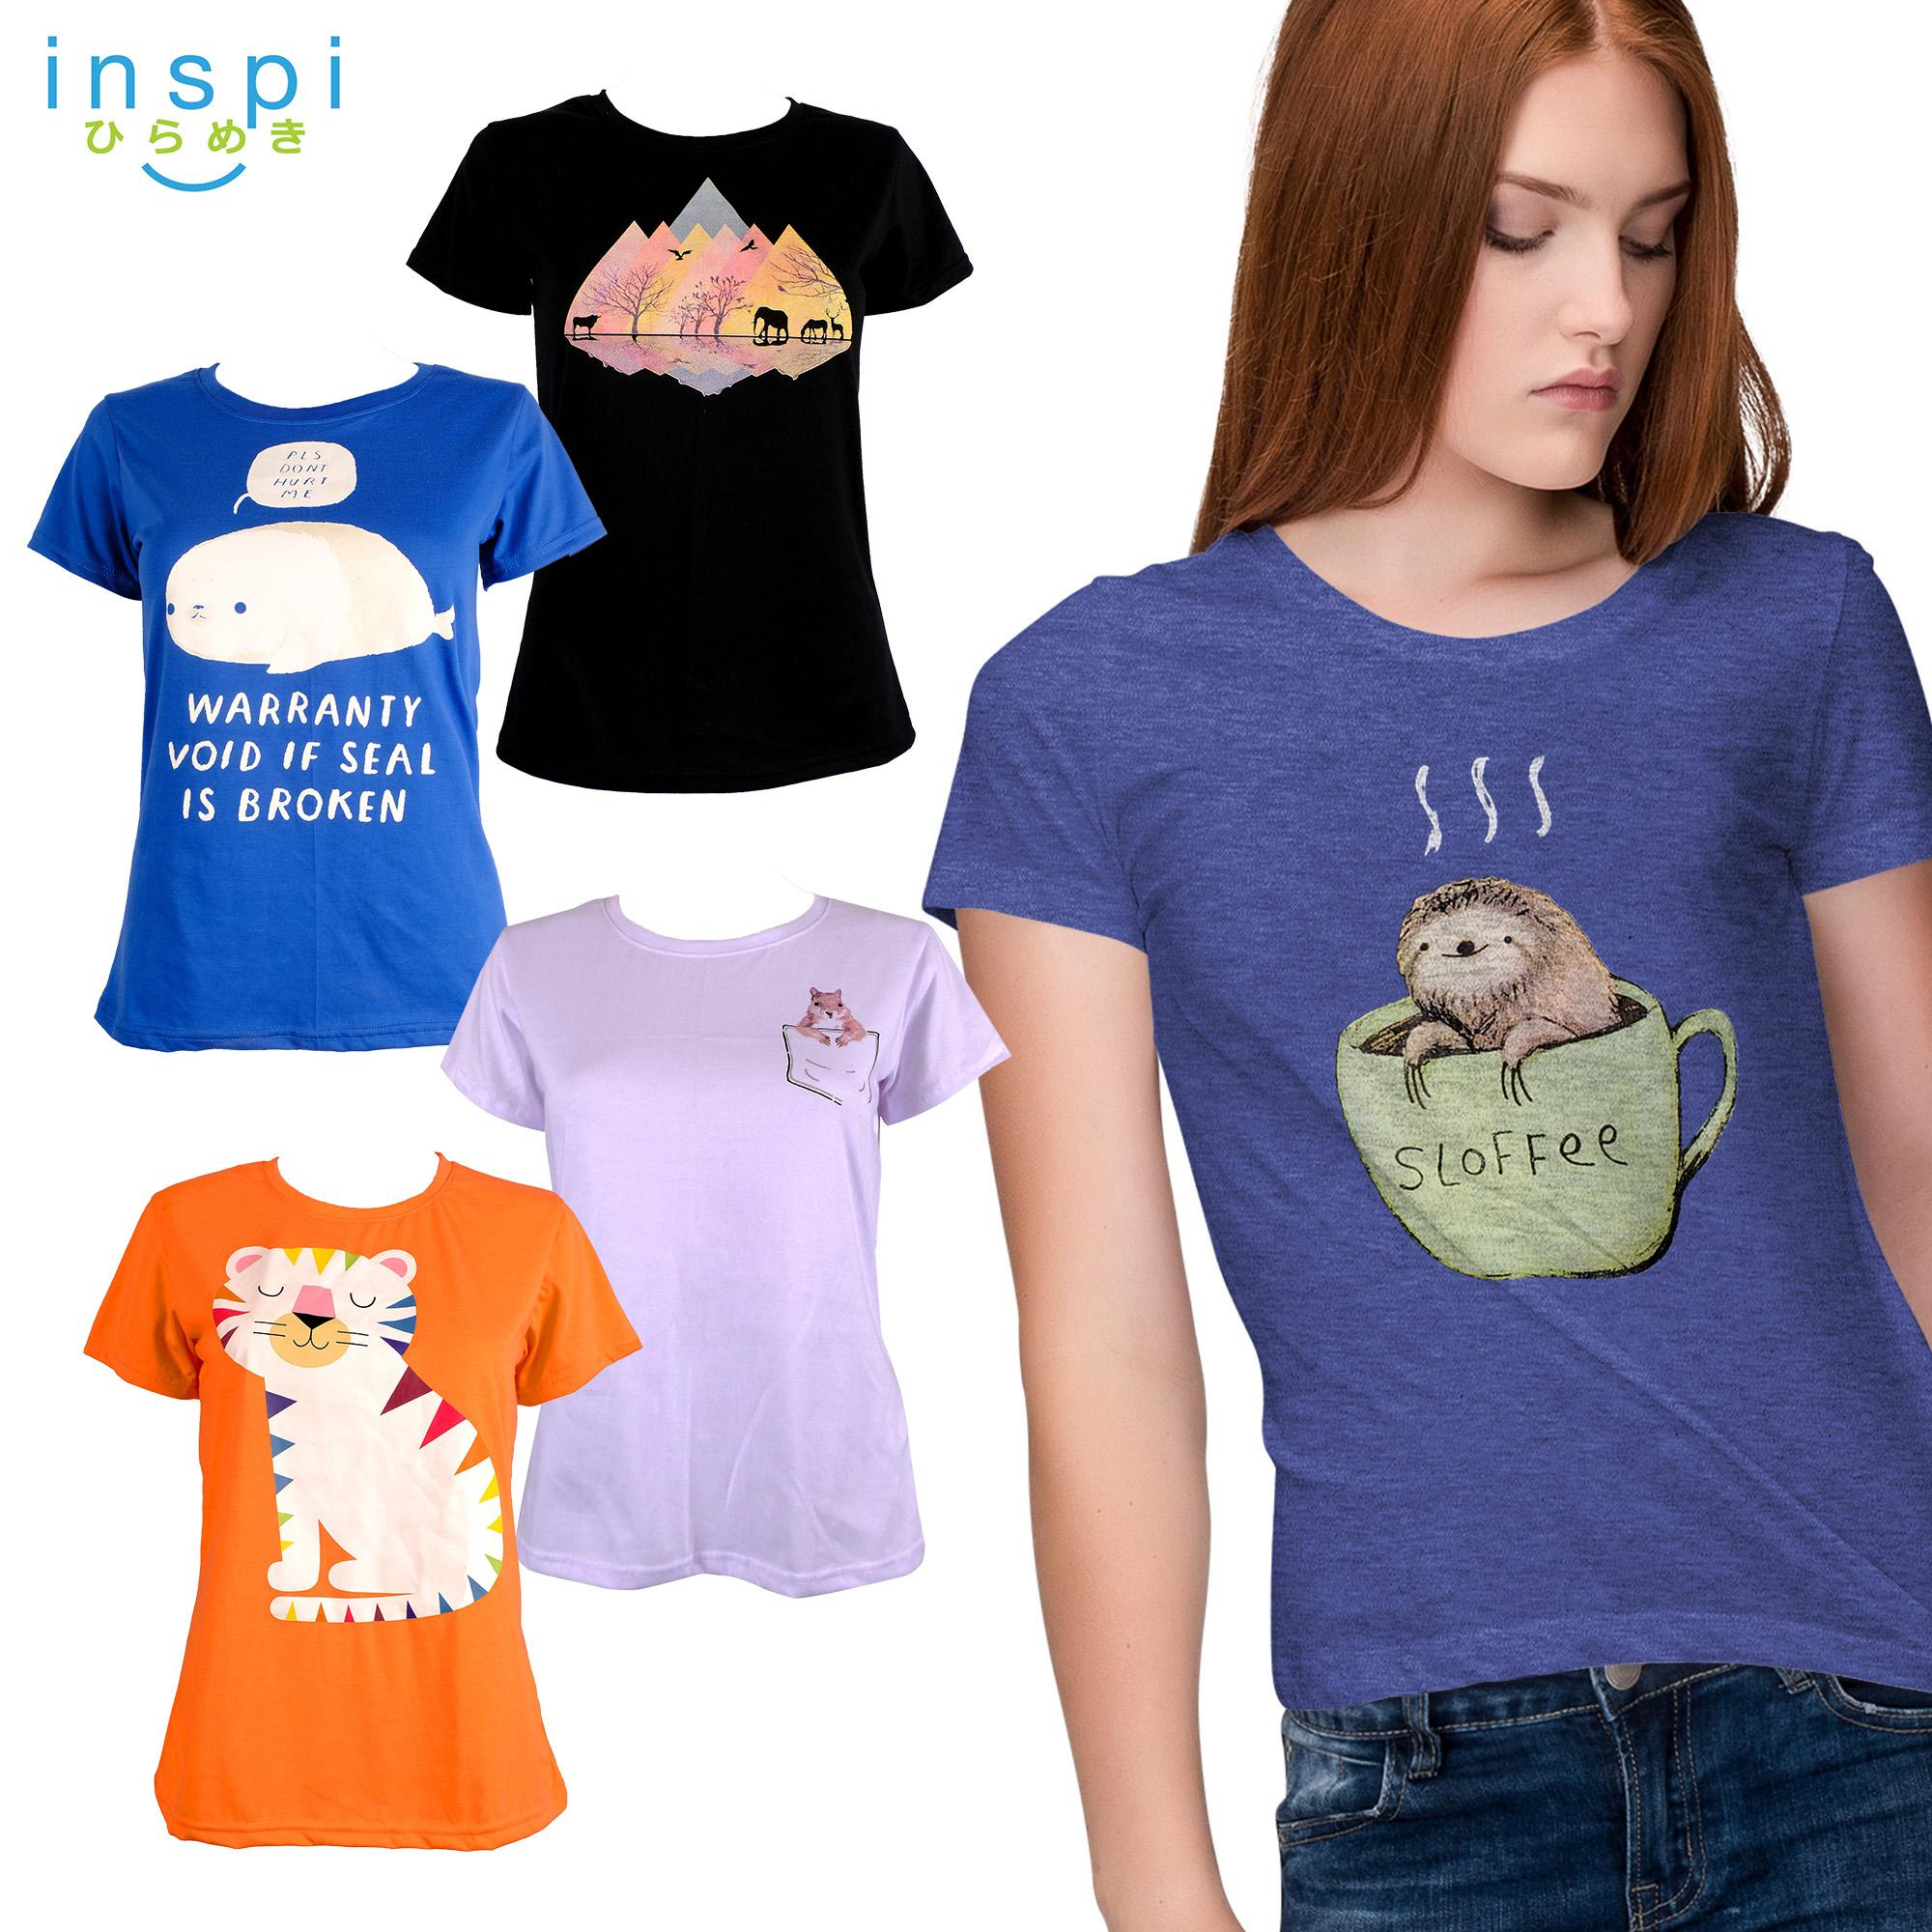 30c56a4e INSPI Tees Ladies Pet Collection tshirt printed graphic tee Ladies t shirt  shirts women tshirts for